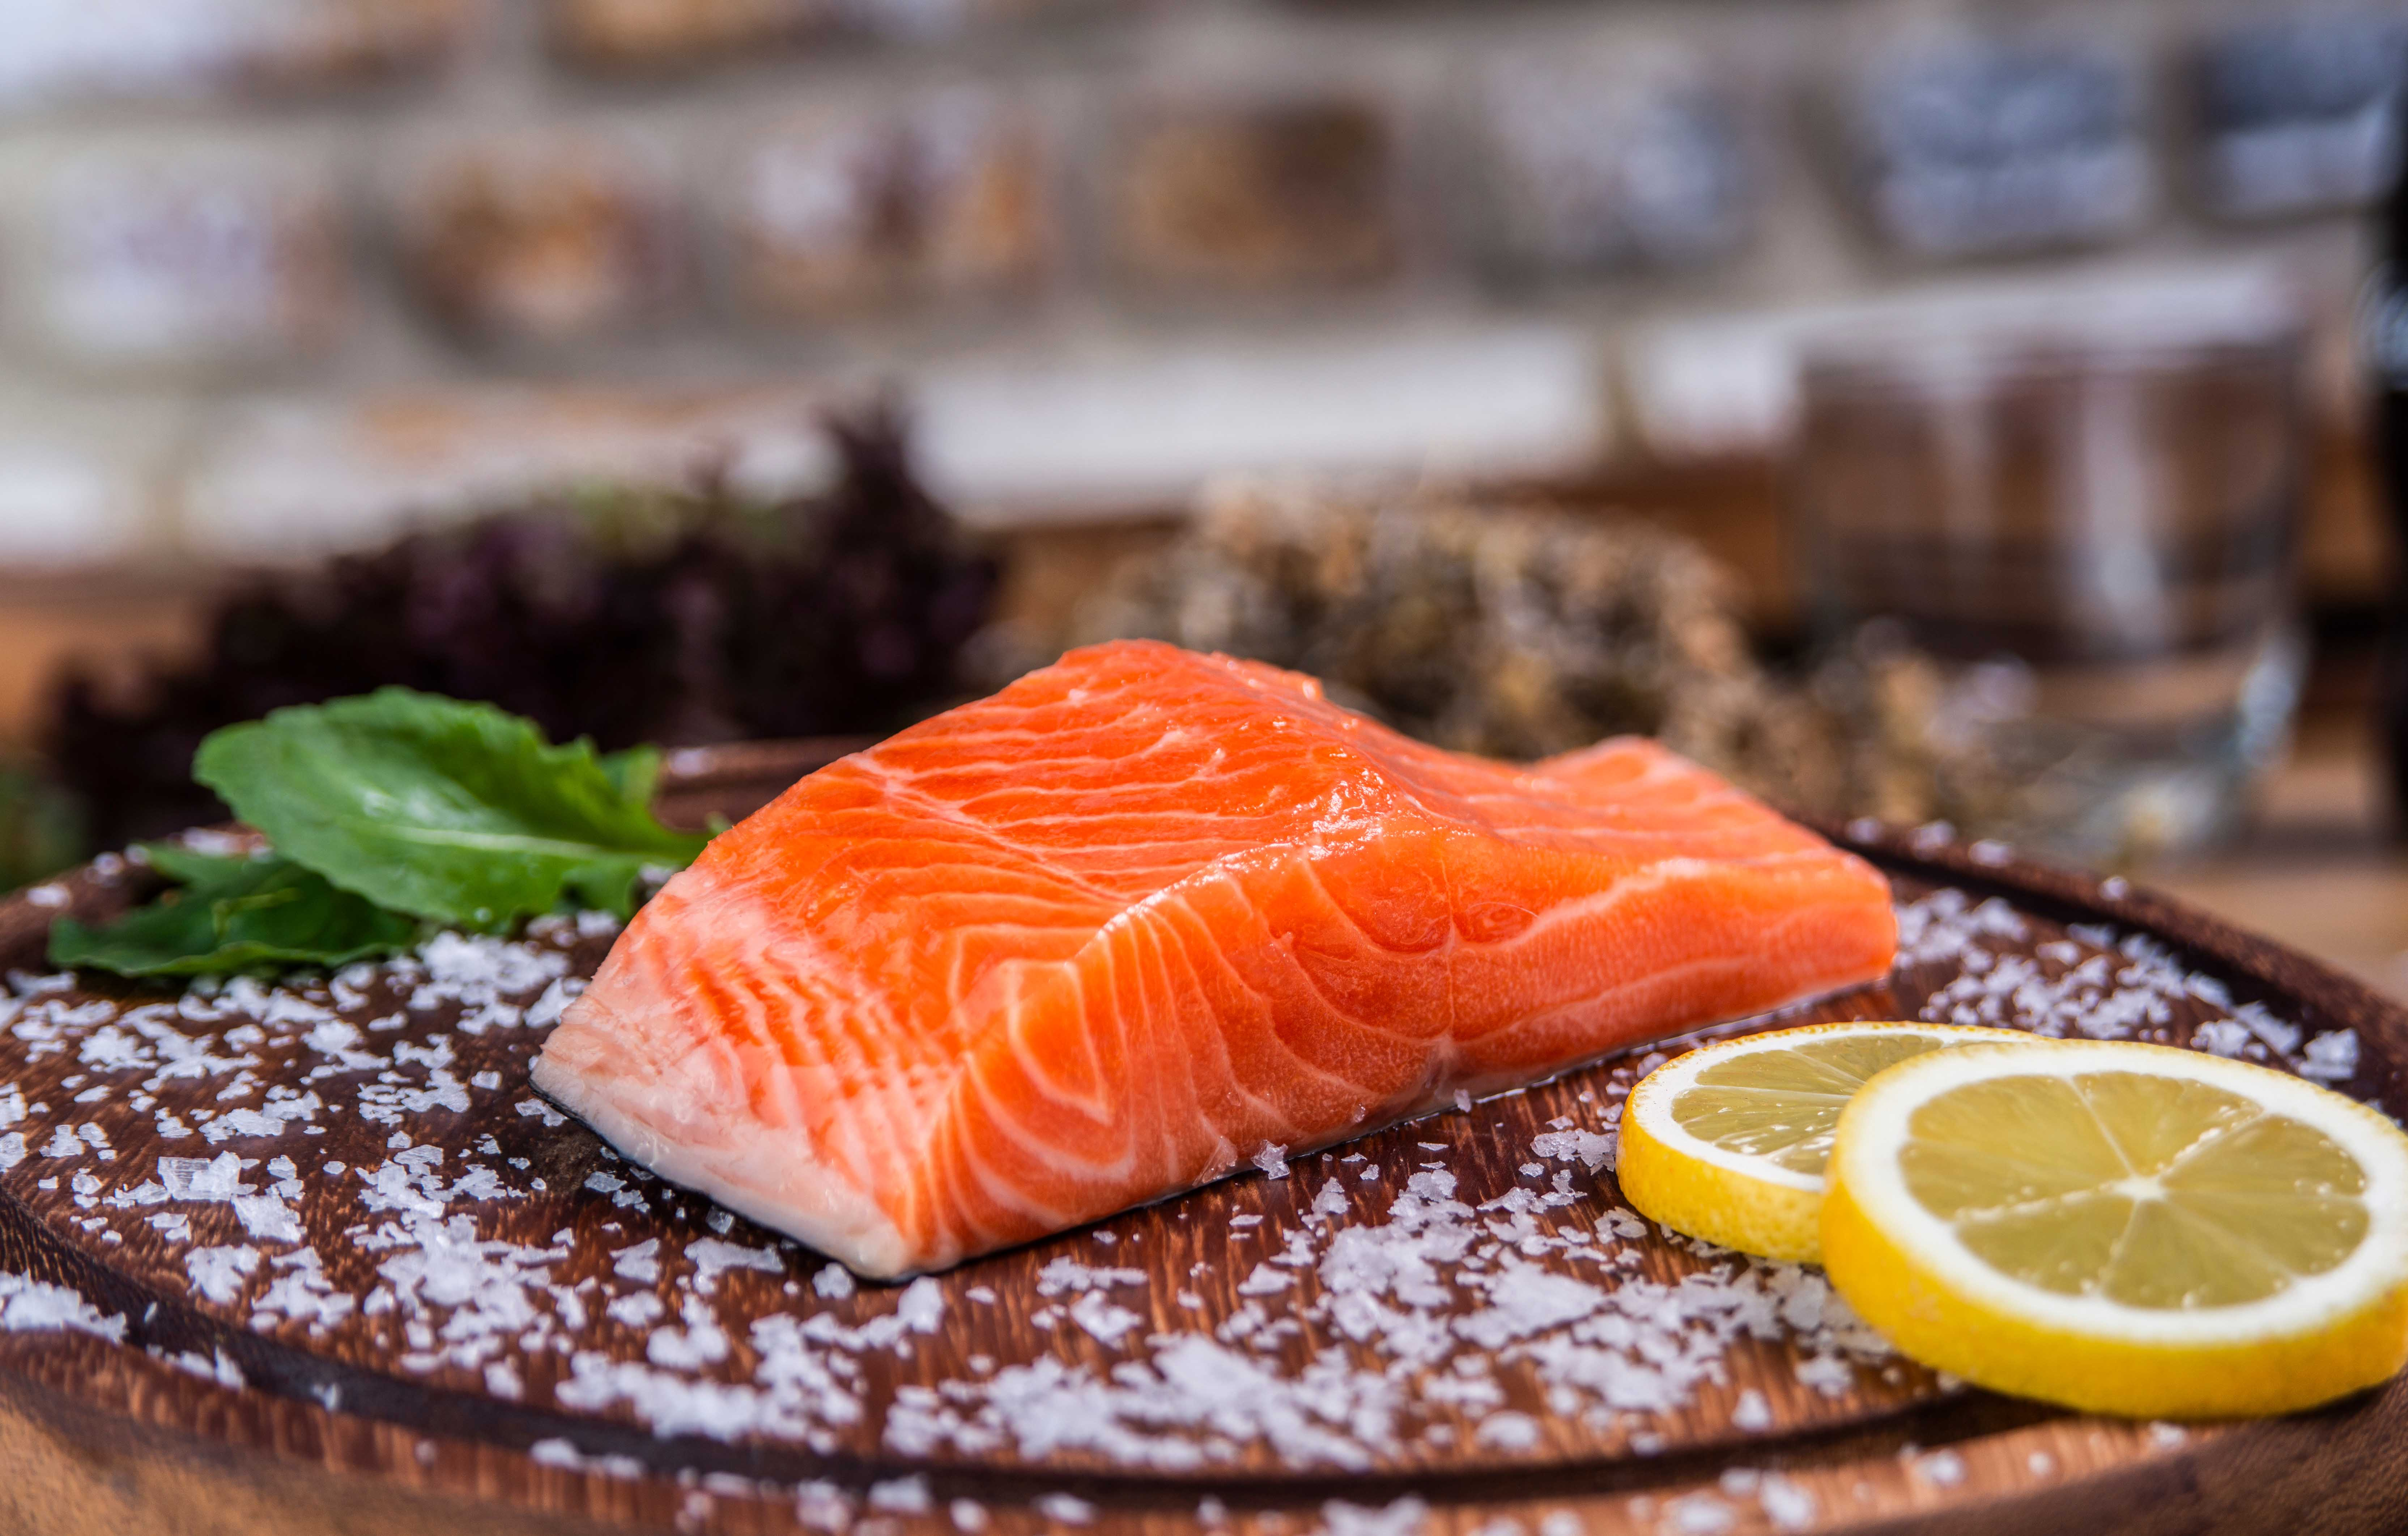 Farmed Salmon: Does Cheaper Fish Come With Increased Risk of